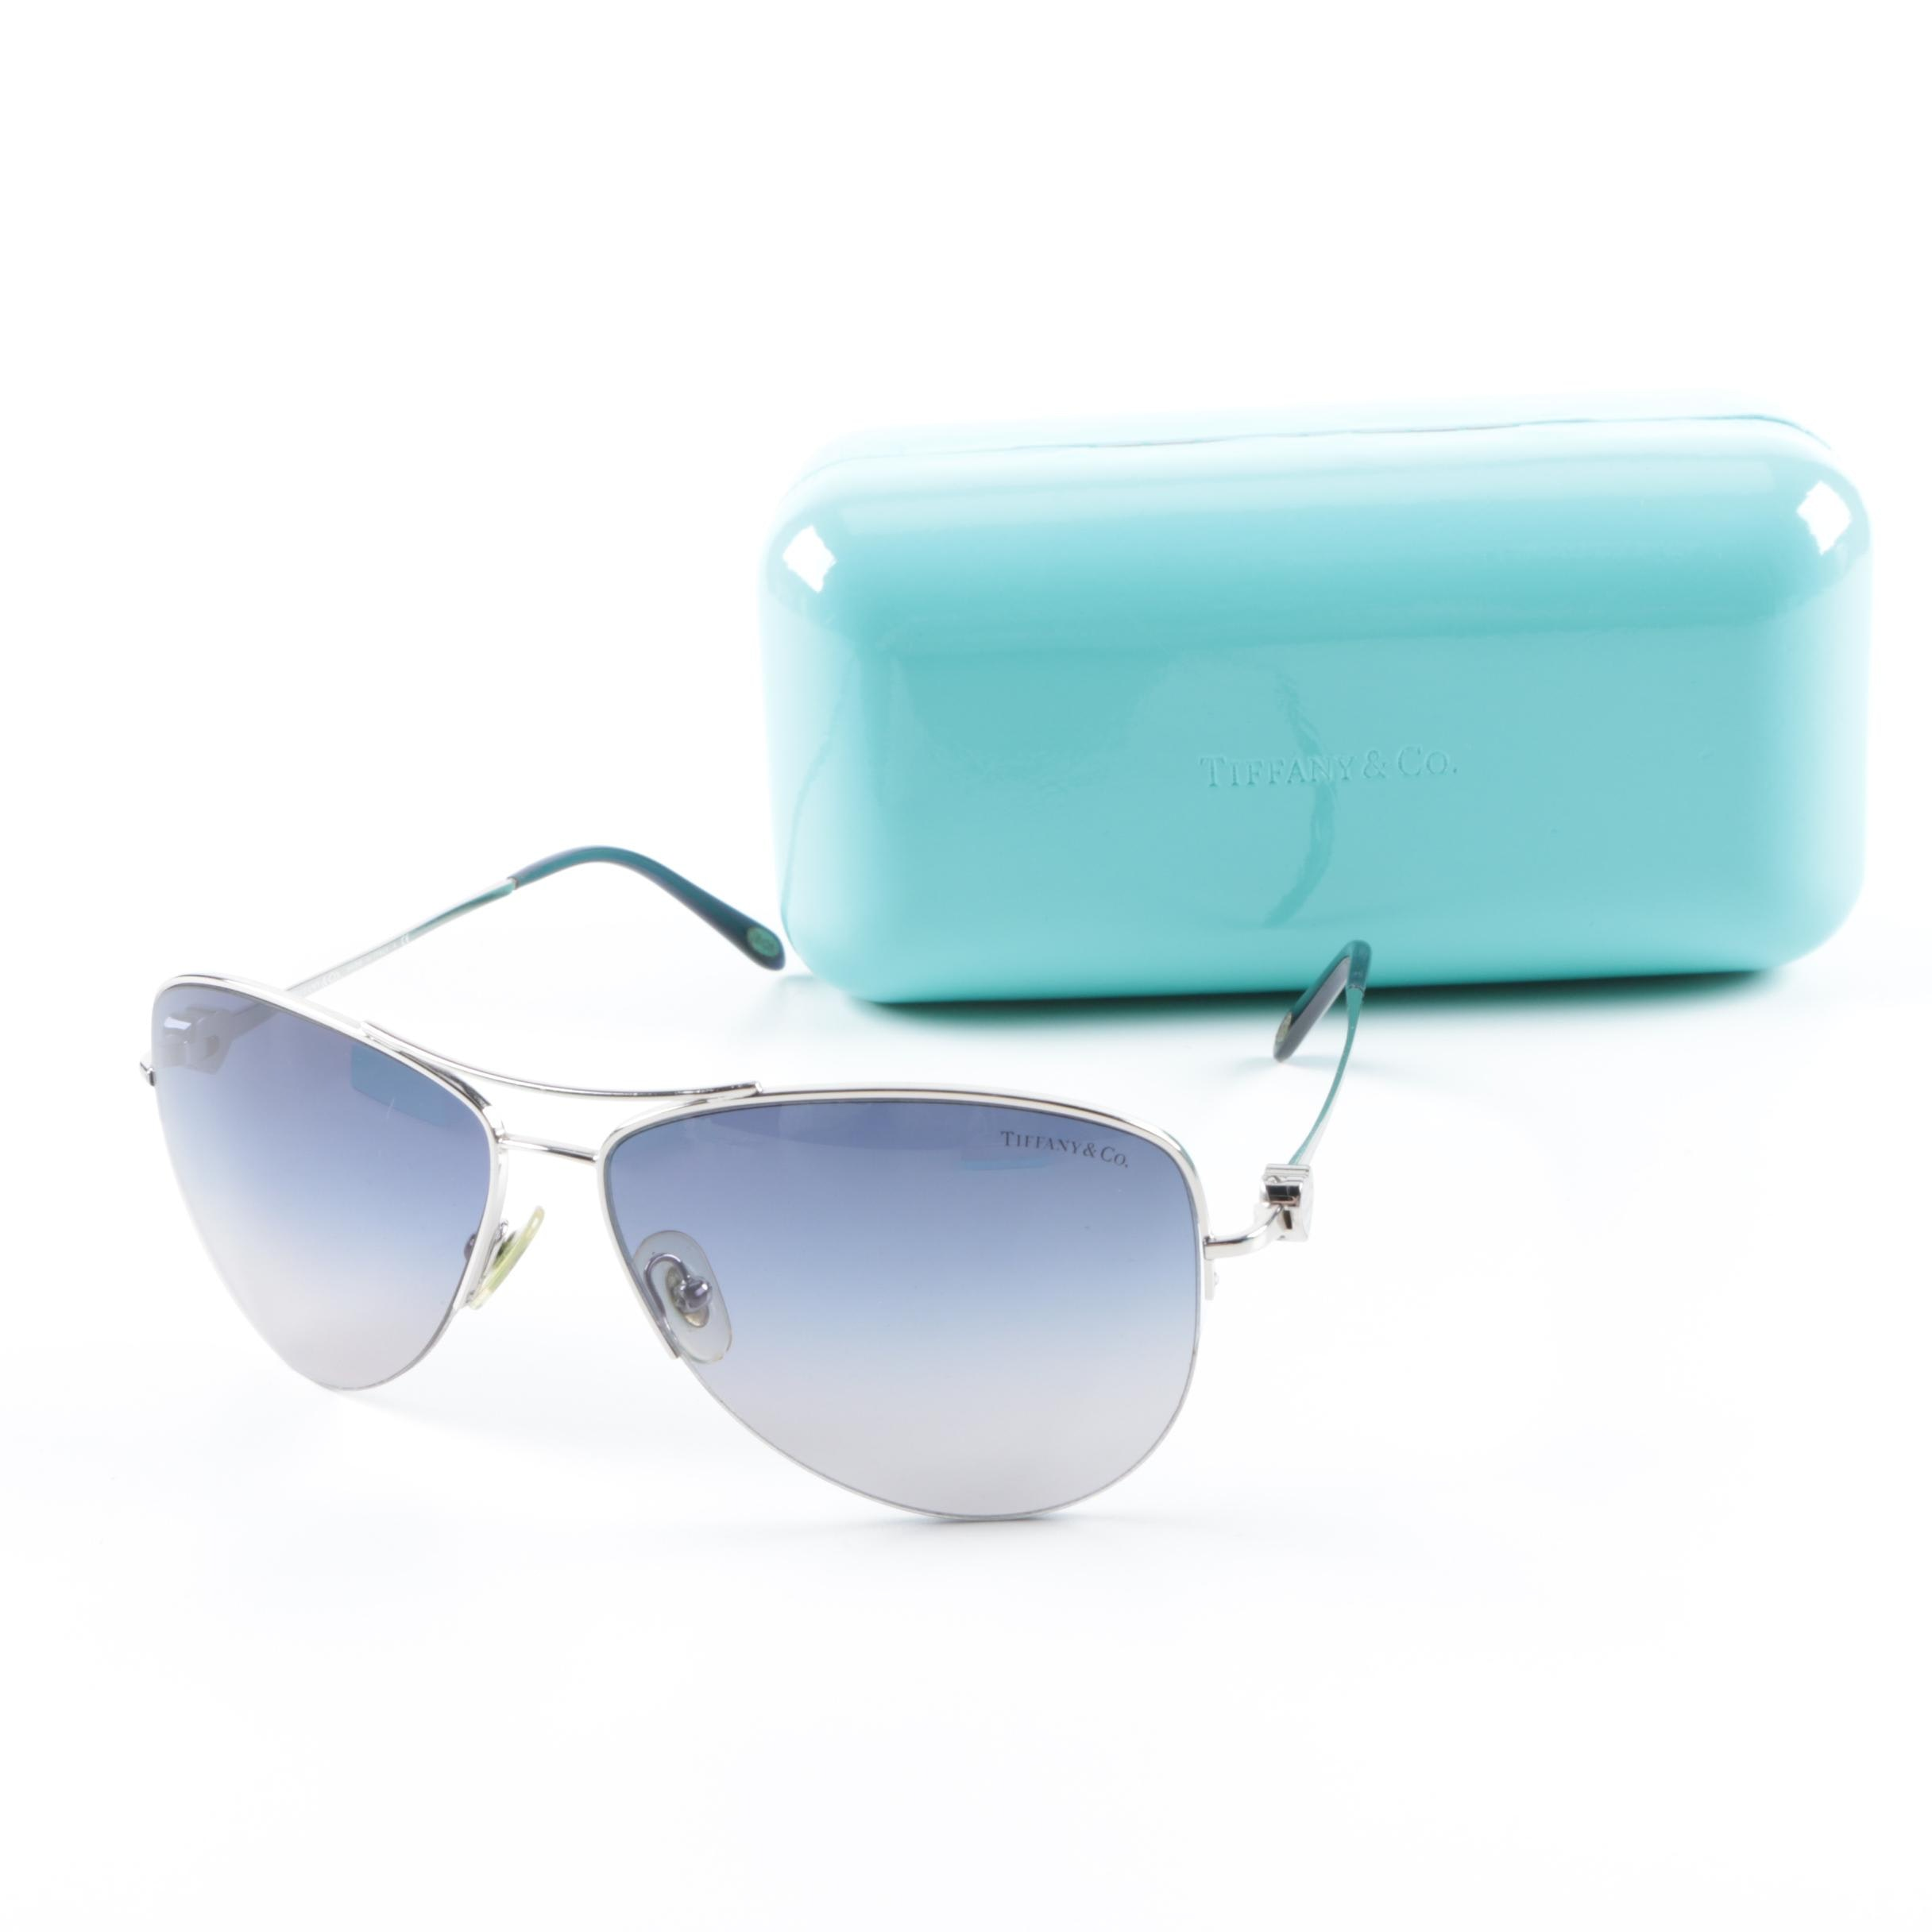 Tiffany & Co. Aviator Sunglasses and Case